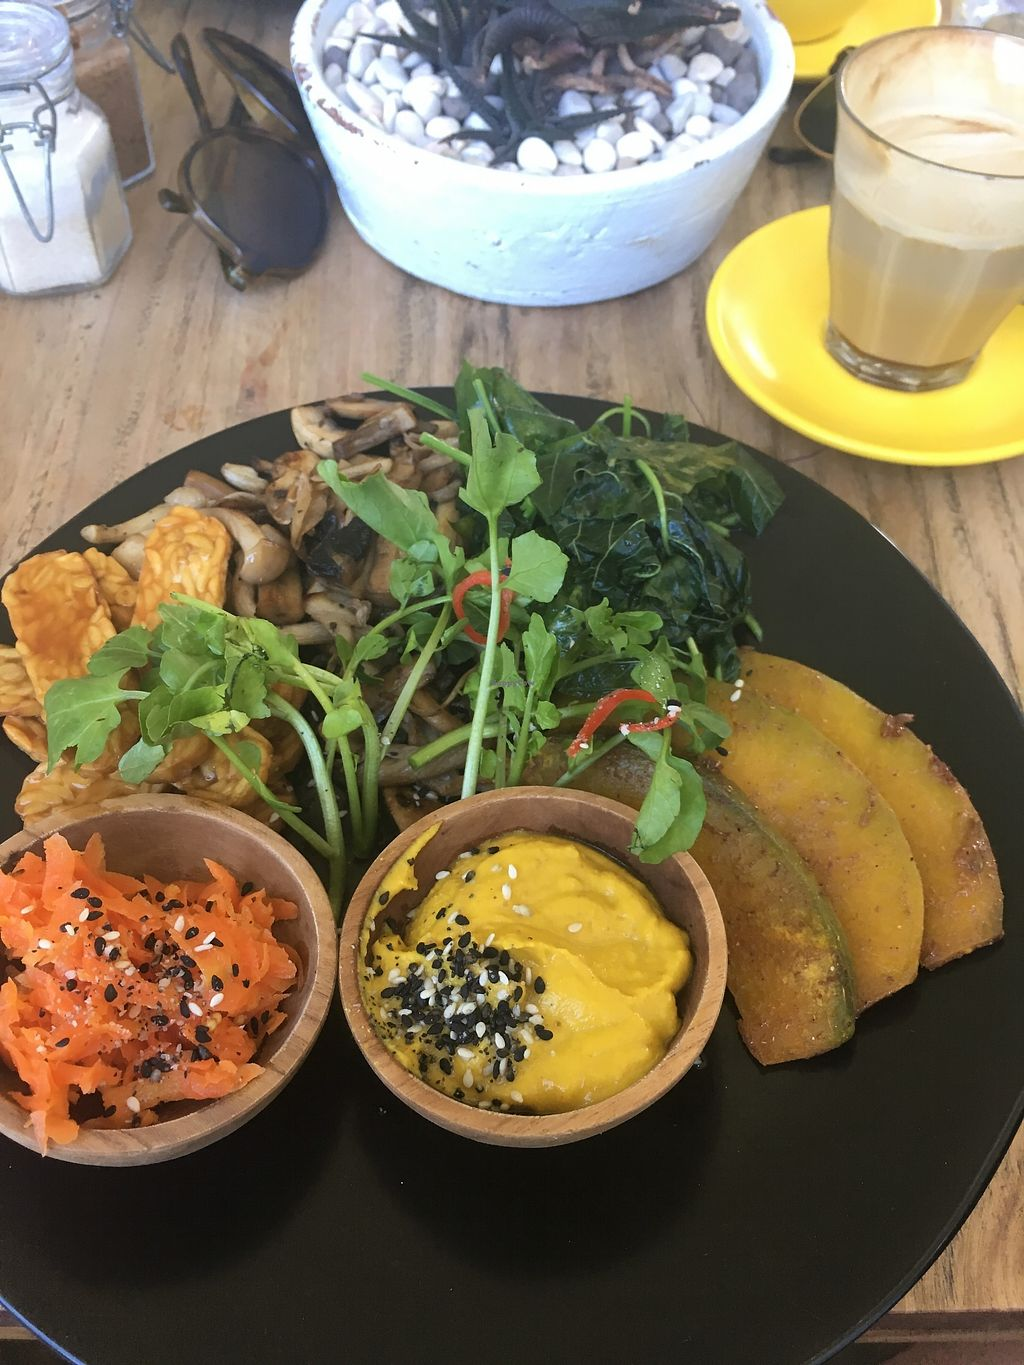 """Photo of Two Trees Eatery  by <a href=""""/members/profile/emmarosewitched"""">emmarosewitched</a> <br/>Build your own meal - BBQ tempeh, sautéed spinach and mushrooms, roasted pumpkin, fermented carrot, and turmeric hummus <br/> March 31, 2018  - <a href='/contact/abuse/image/108911/378644'>Report</a>"""